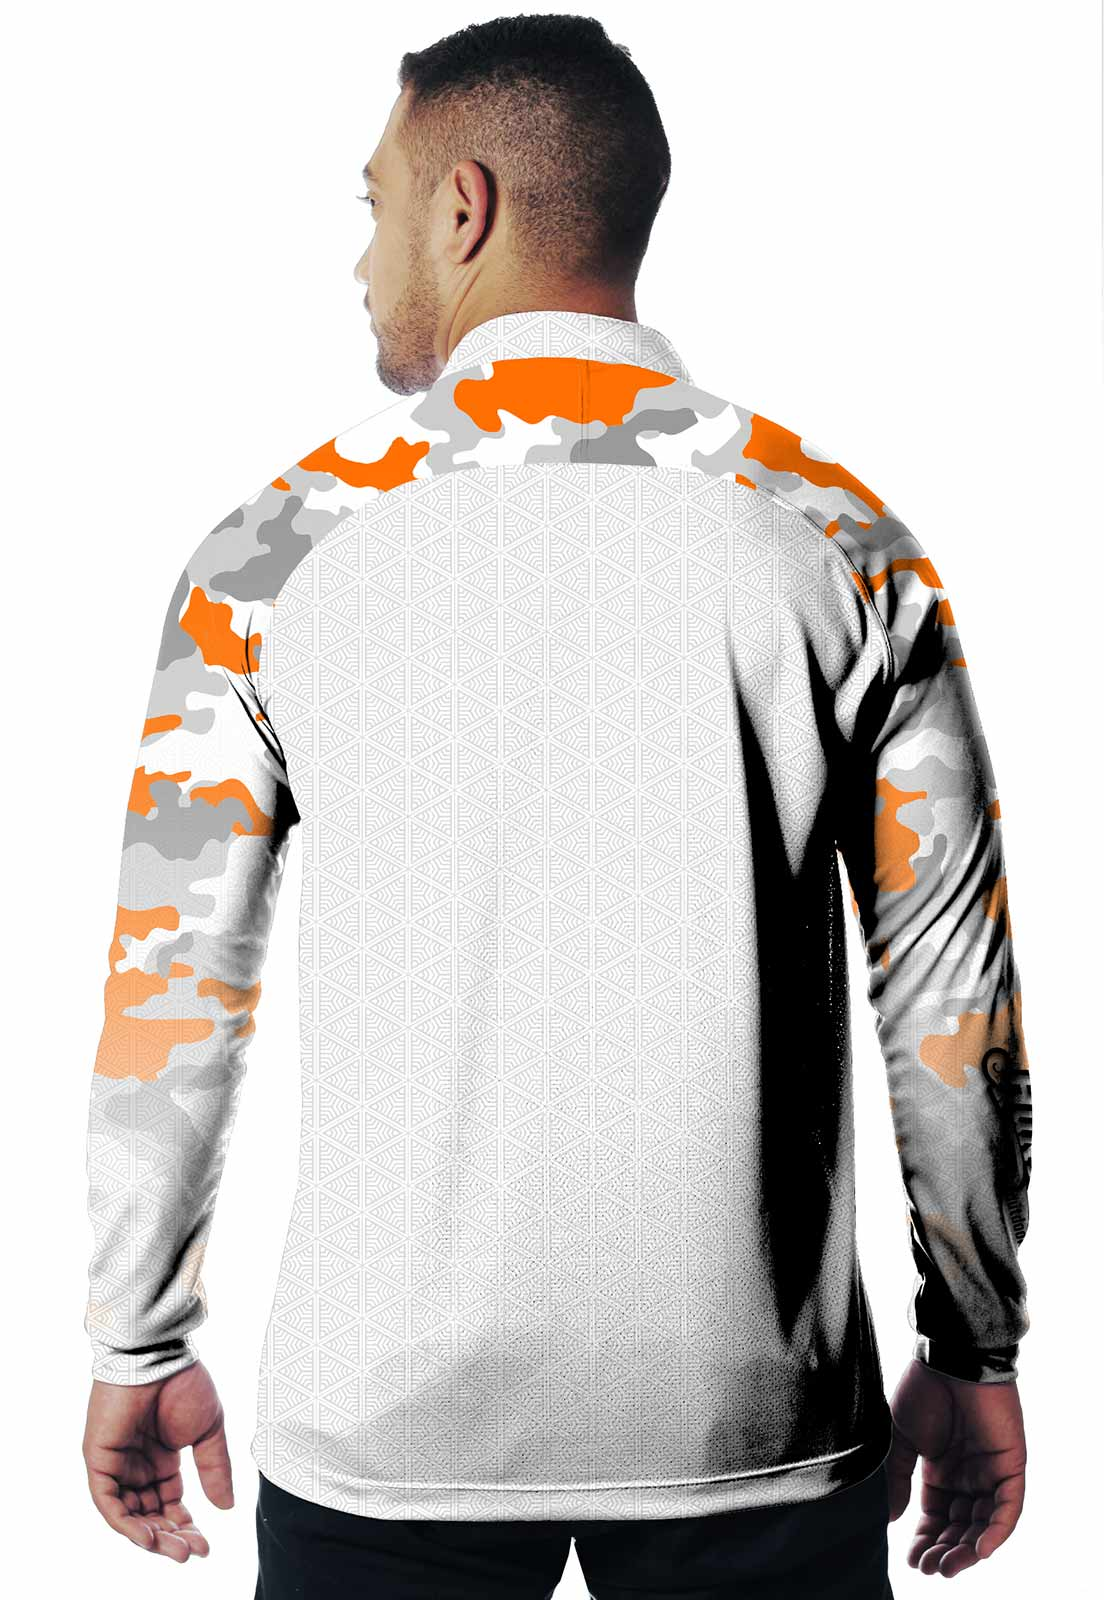 CAMISA DE PESCA FISH PRO 20 MASCULINA + BANDANA GRÁTIS  - REAL HUNTER OUTDOORS